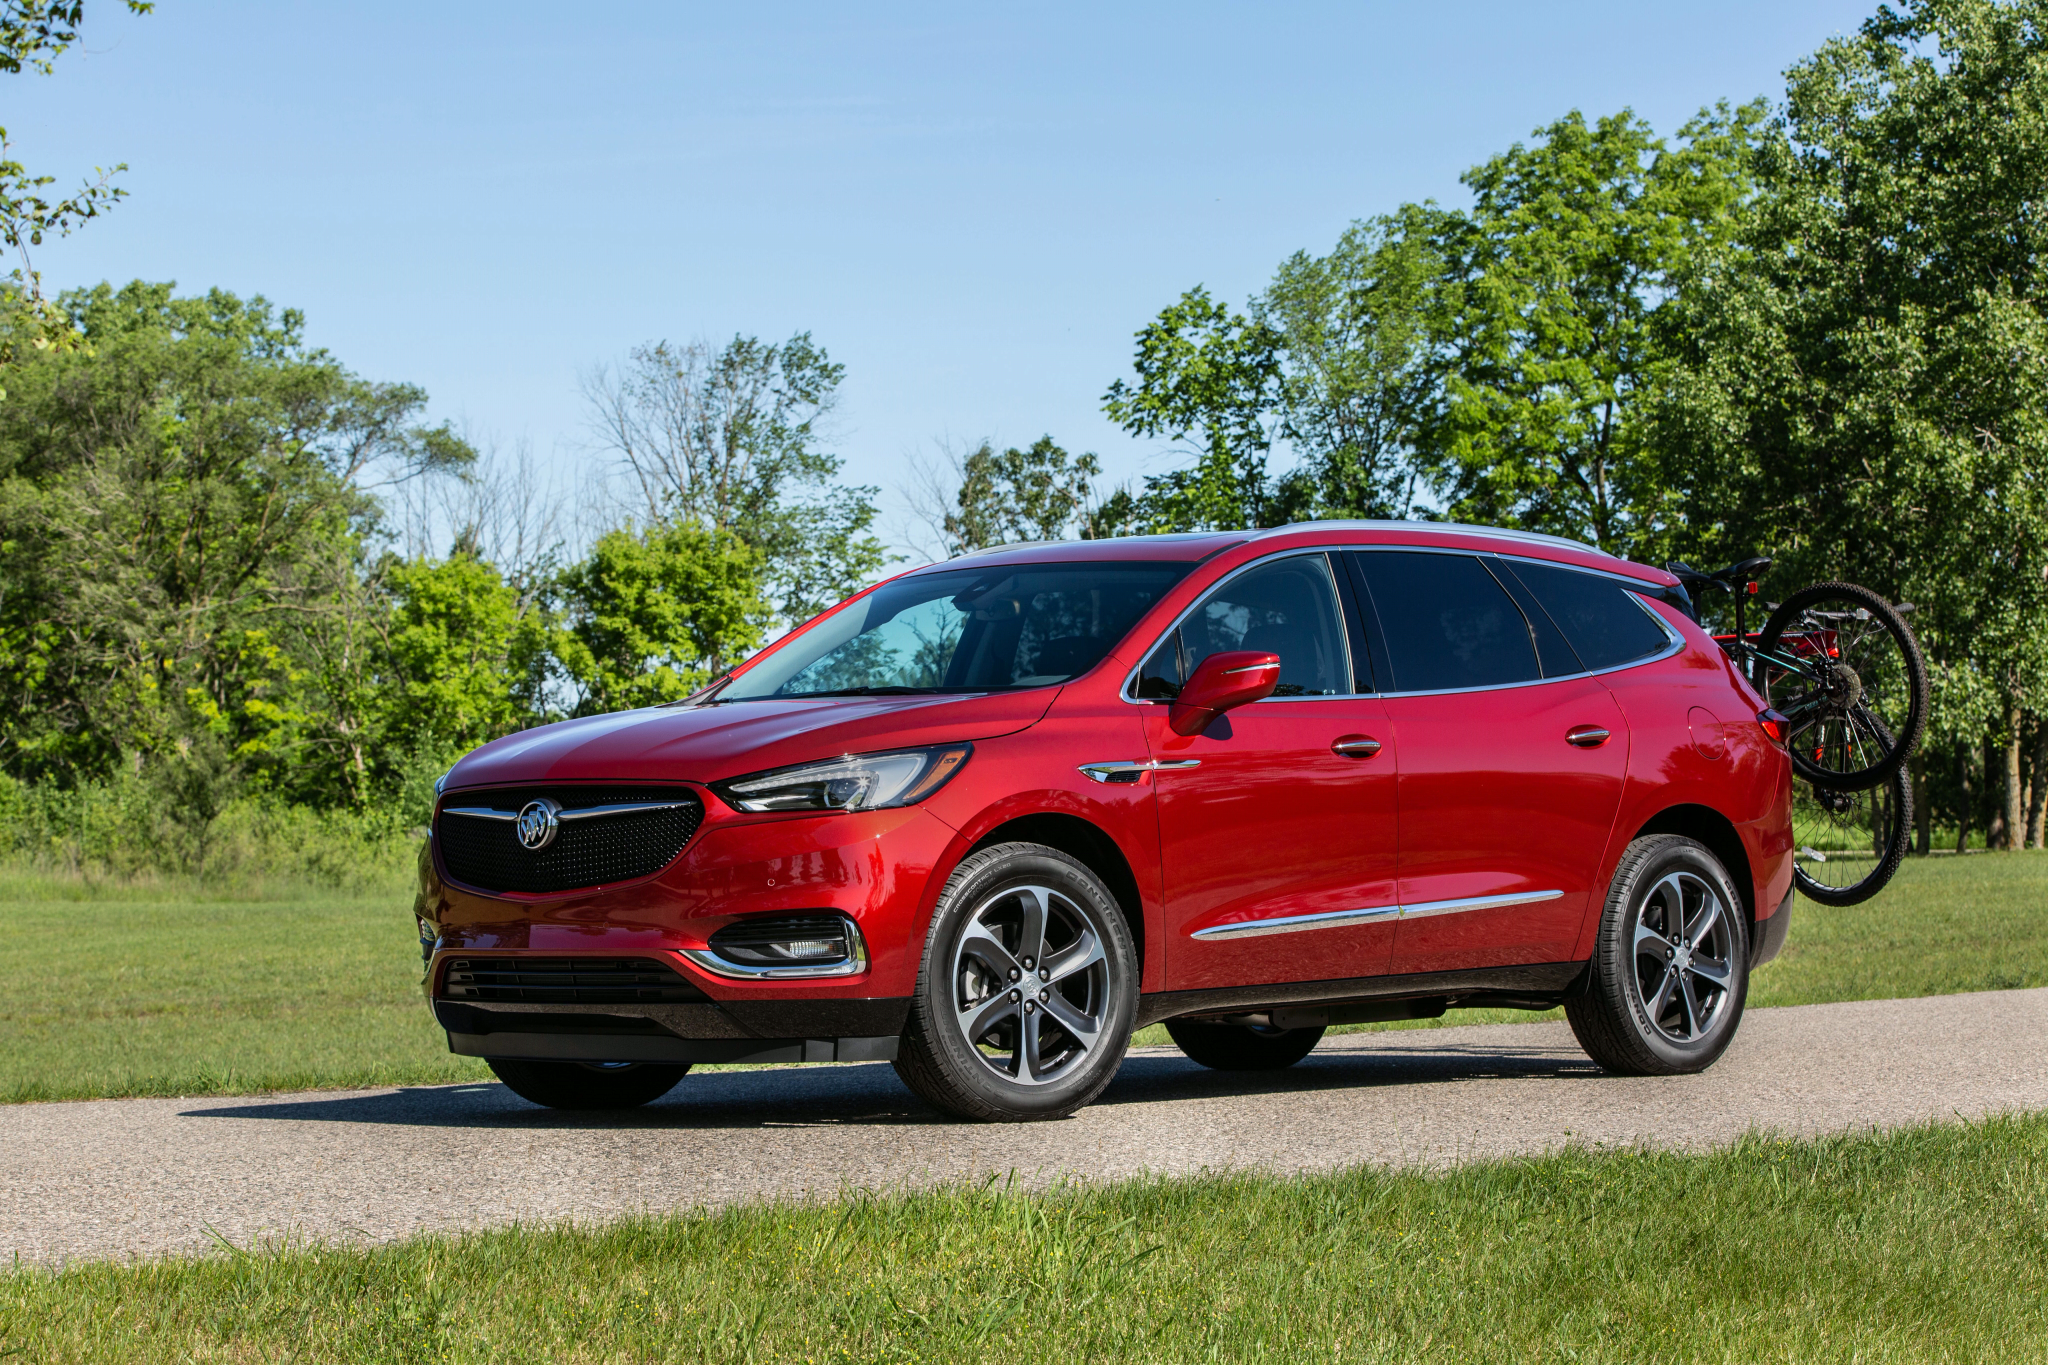 buick-enclave-2020-3-angle--exterior--front--red.jpg